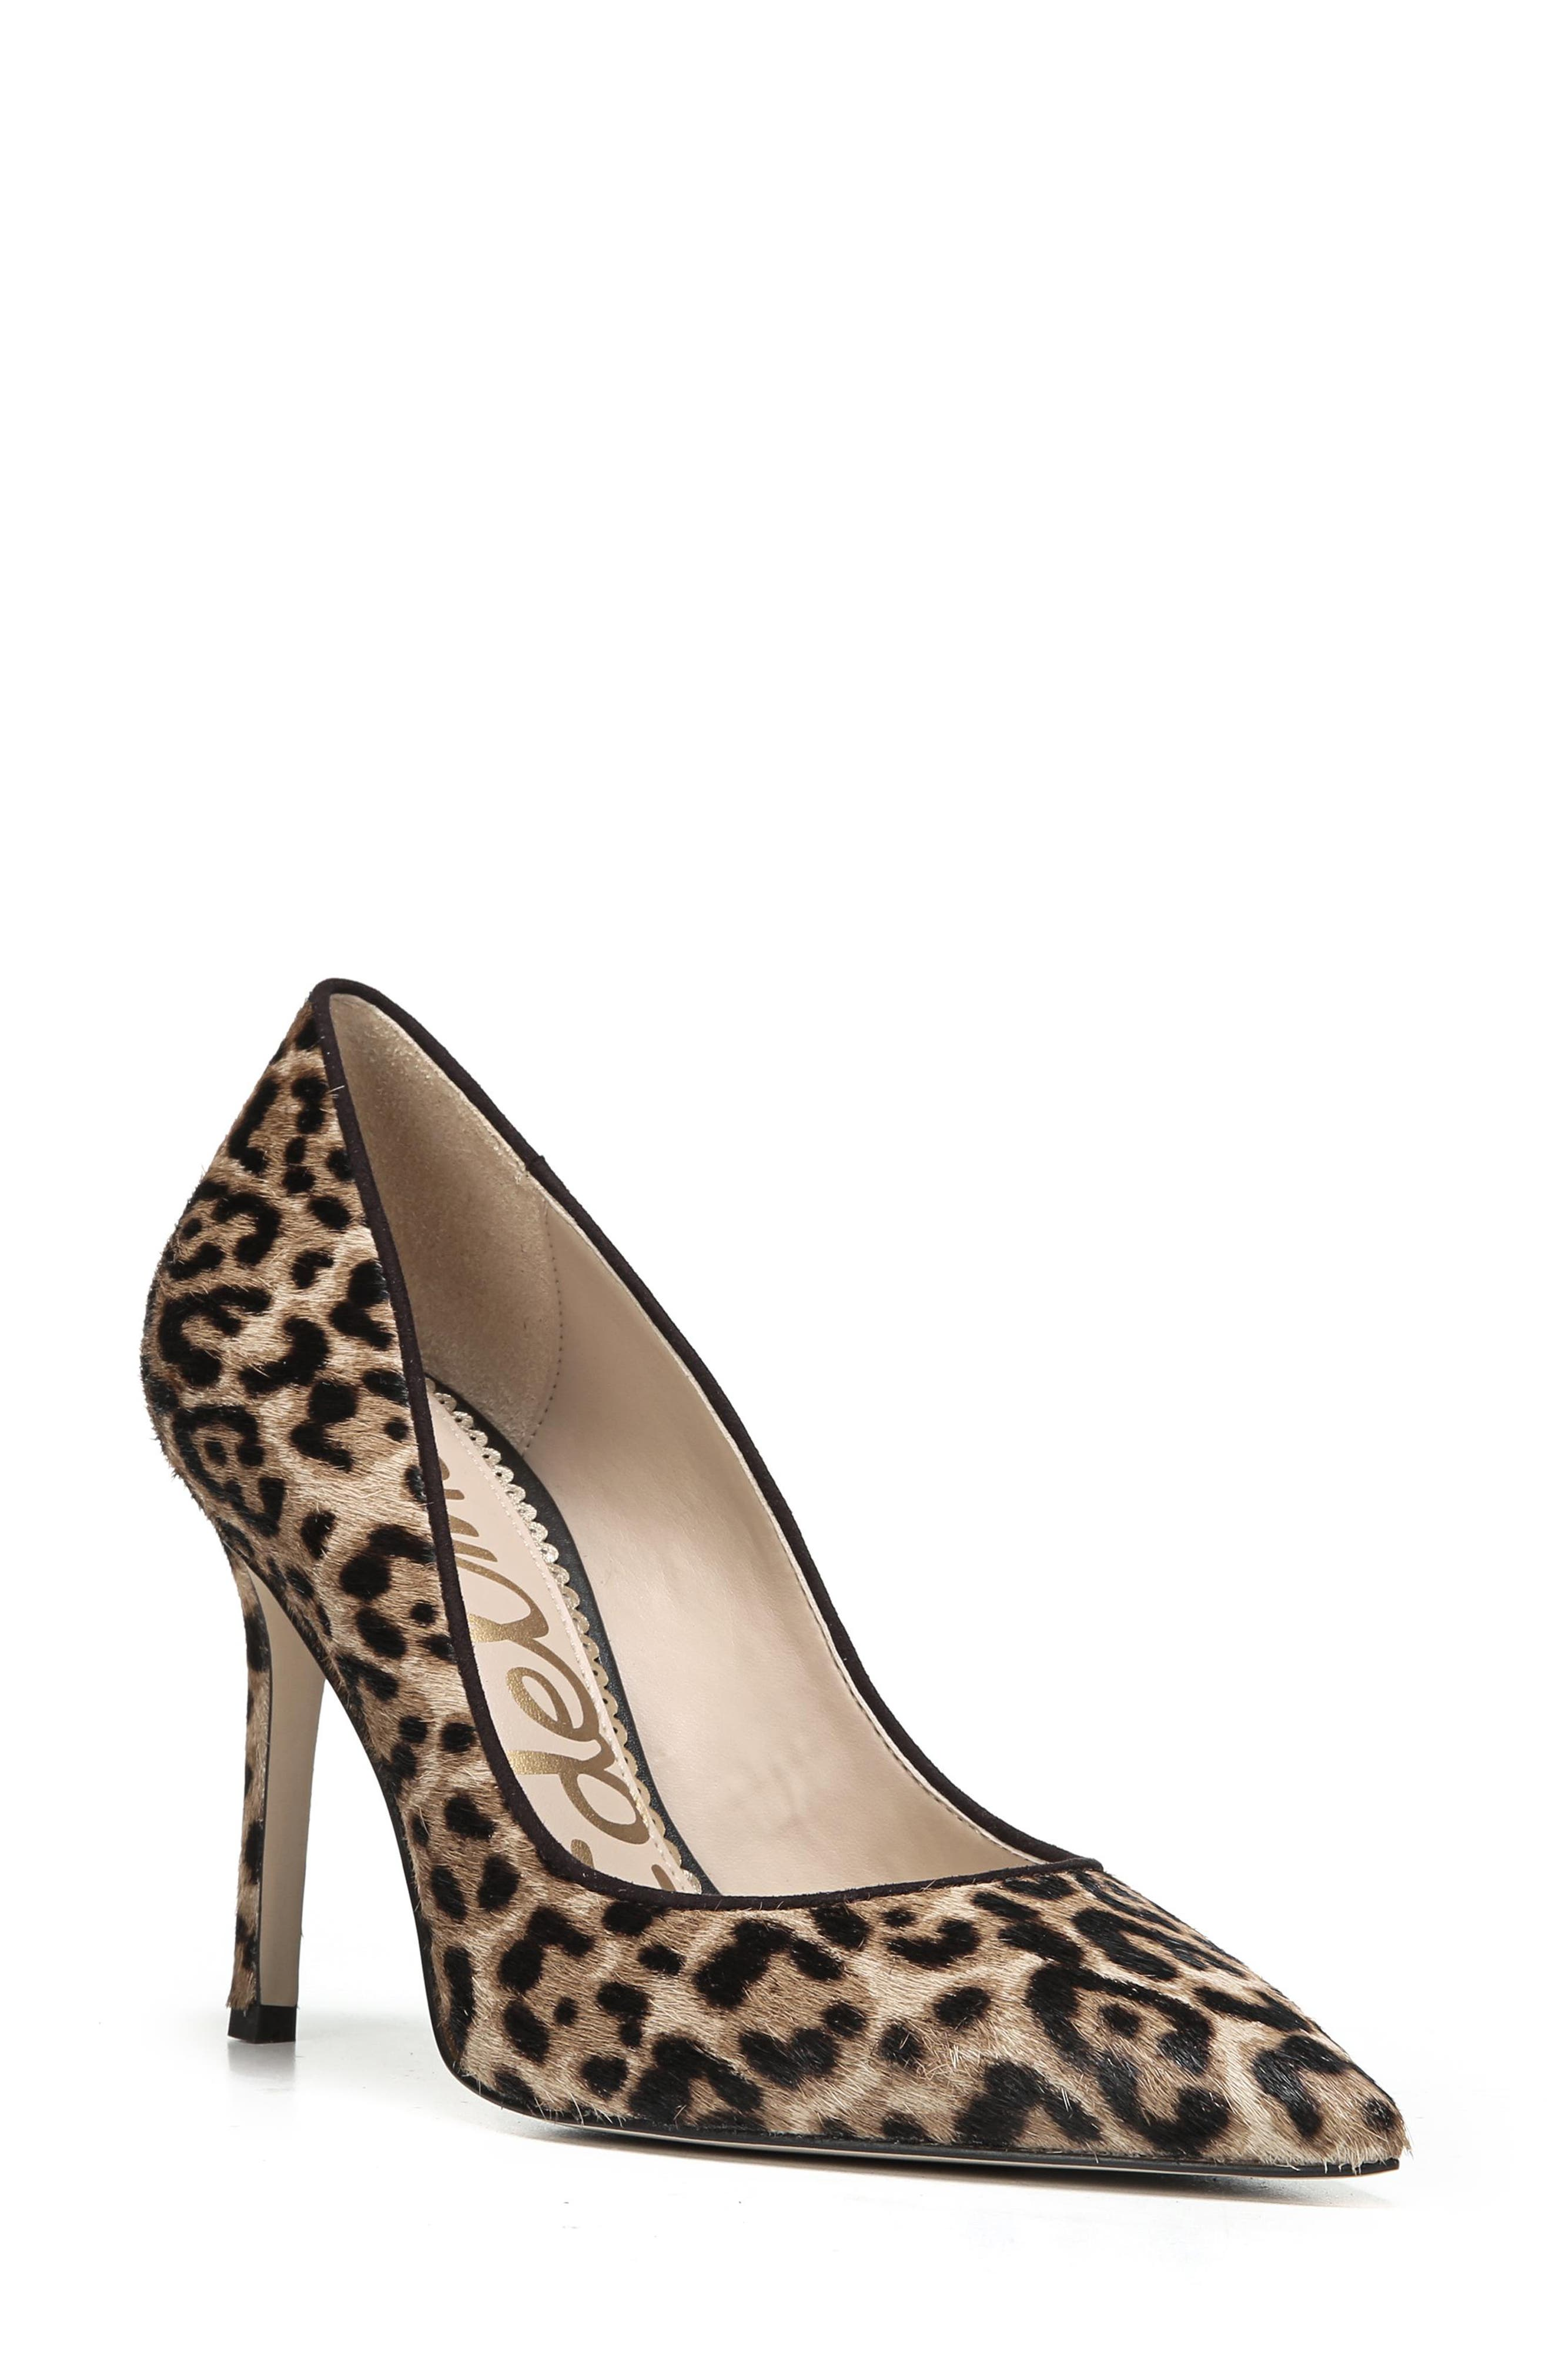 SAM EDELMAN Hazel Pointy Toe Pump, Main, color, LEOPARD CALF HAIR